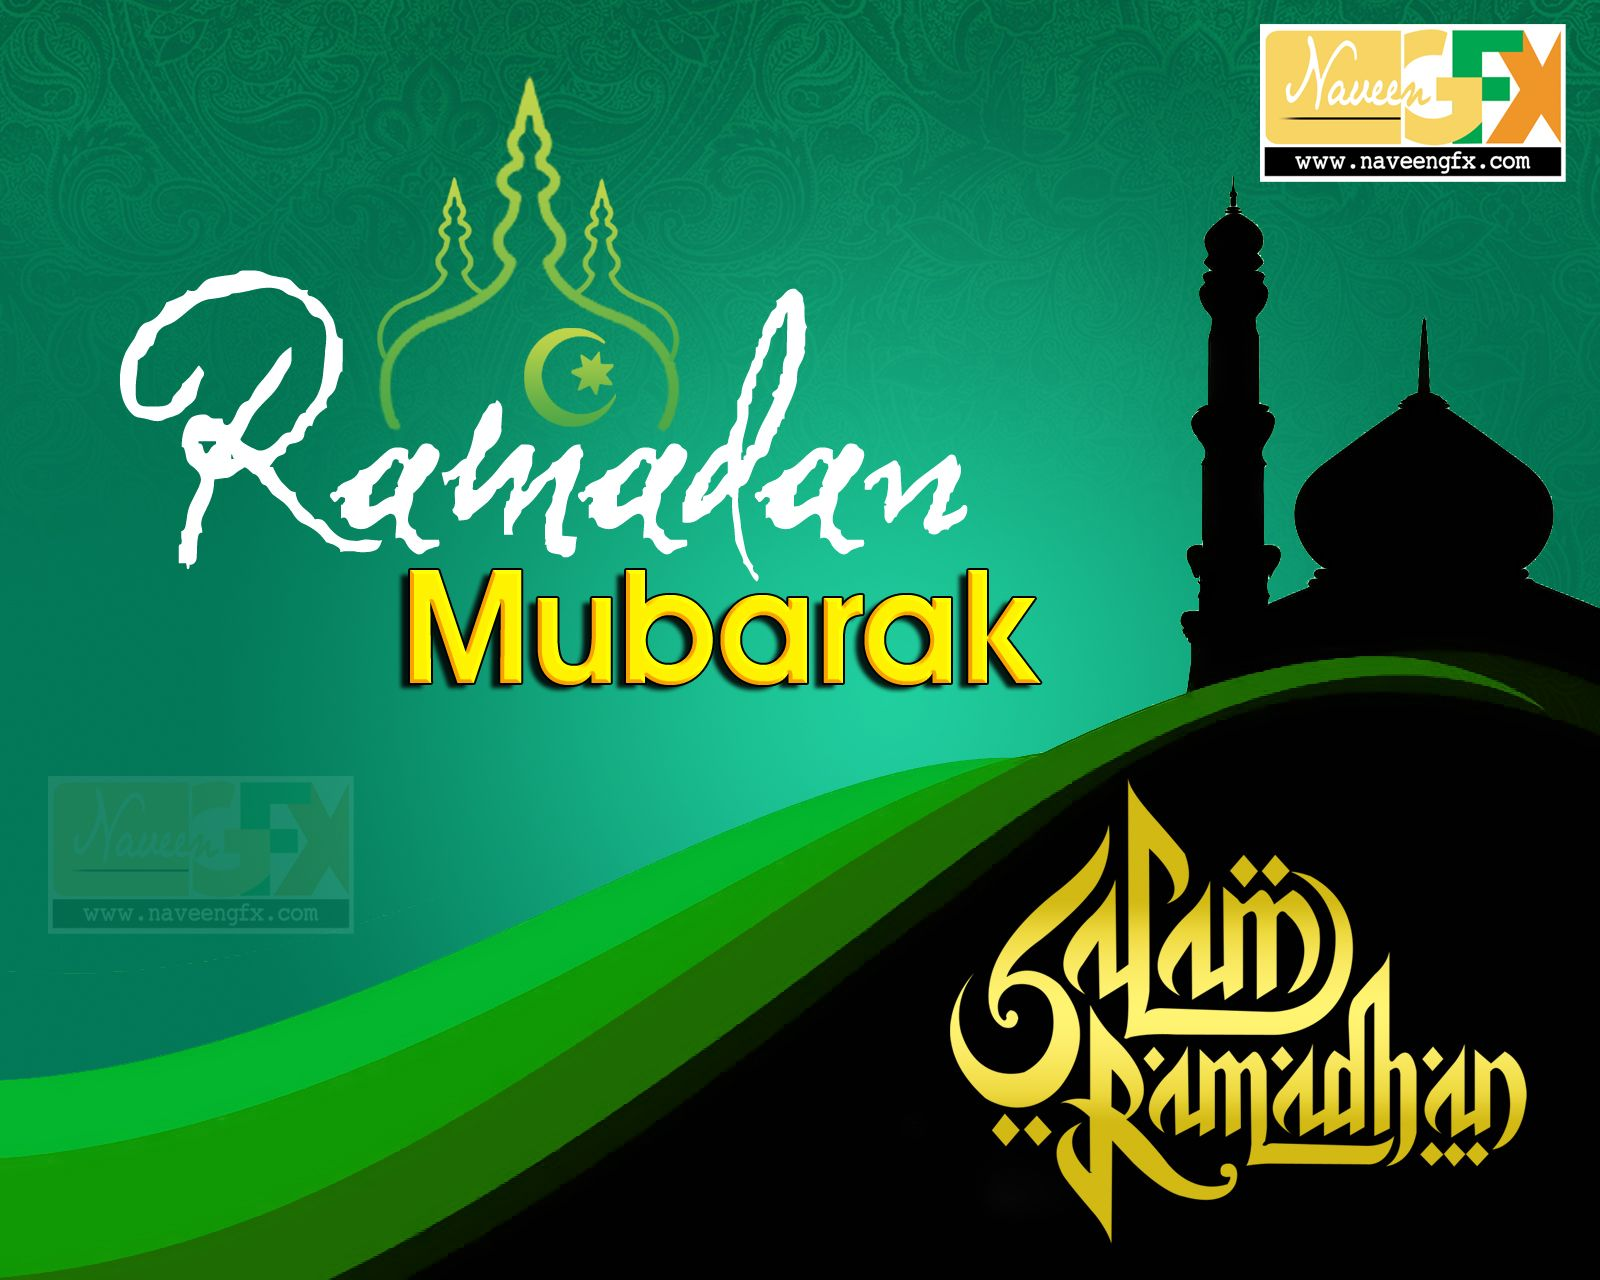 Hd wallpaper ramzan mubarak - Ramadan Mubarak Kareen Islamic Urdu Hd Wallpapers01 Islamic Designs And Quotes Pinterest Ramadan Mubarak Ramadan And Islamic